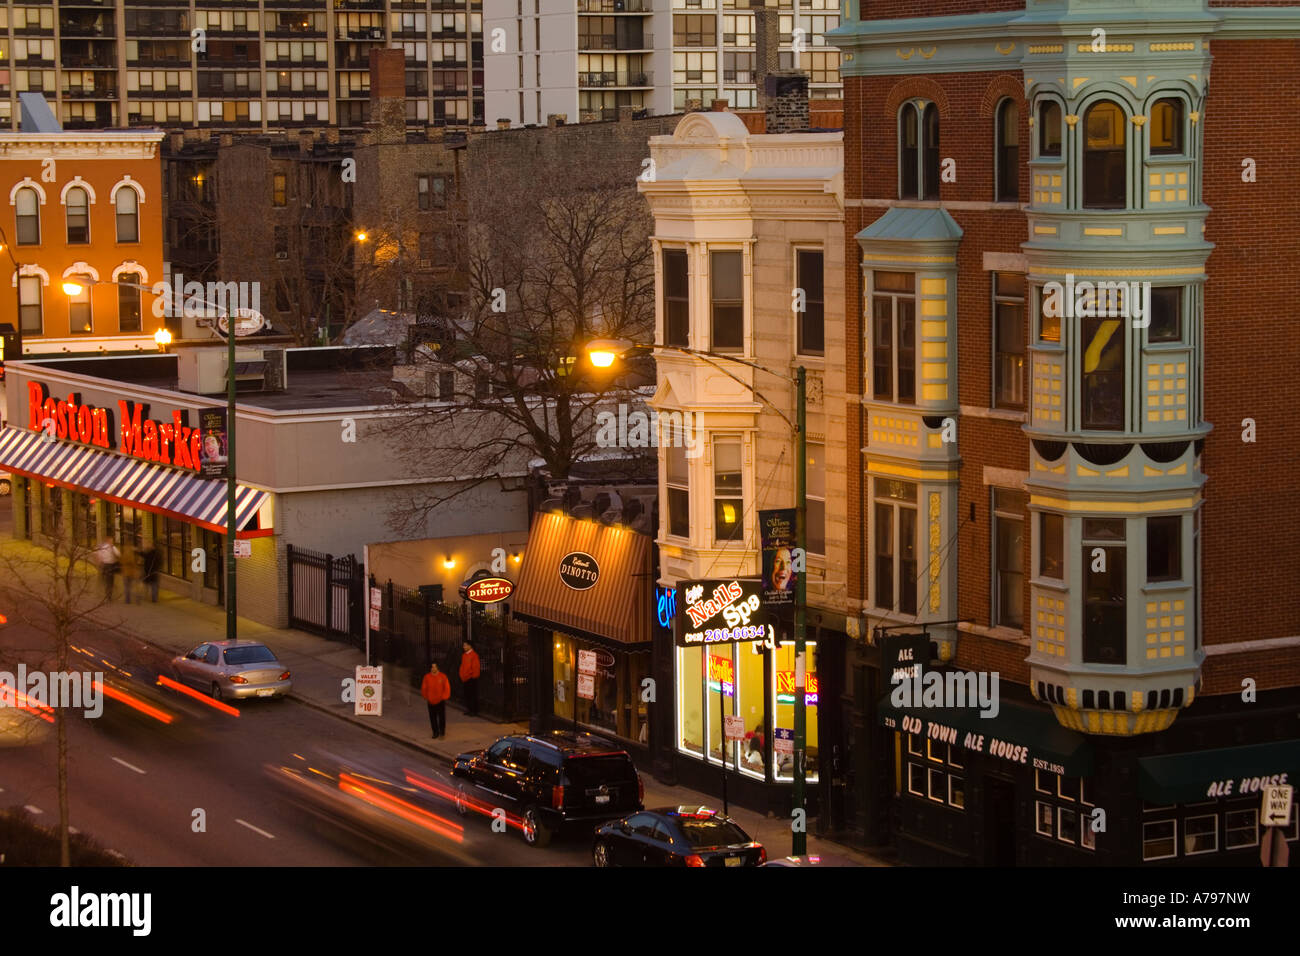 CHICAGO Illinois Restaurants businesses and stores along North Avenue aerial view traffic on street Old Town neighborhood - Stock Image